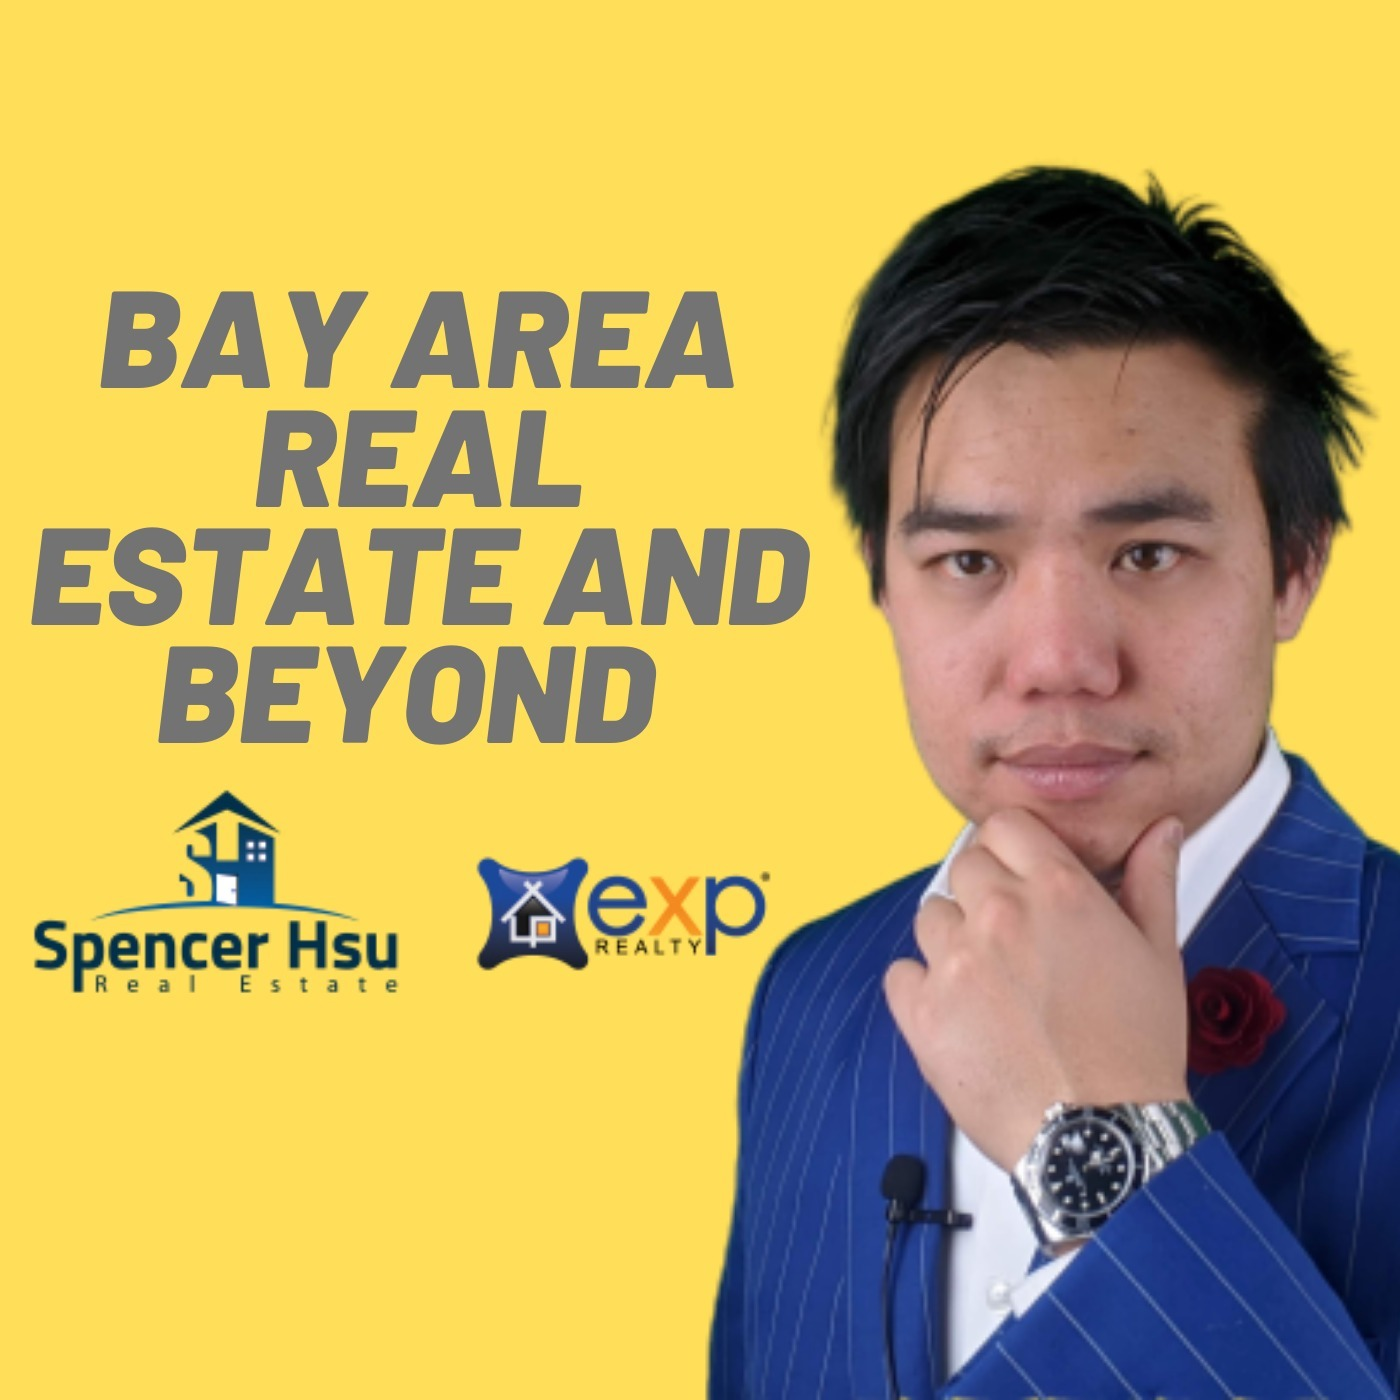 Bay Area Real Estate and Beyond | MBA Tech Realtor Spencer Hsu